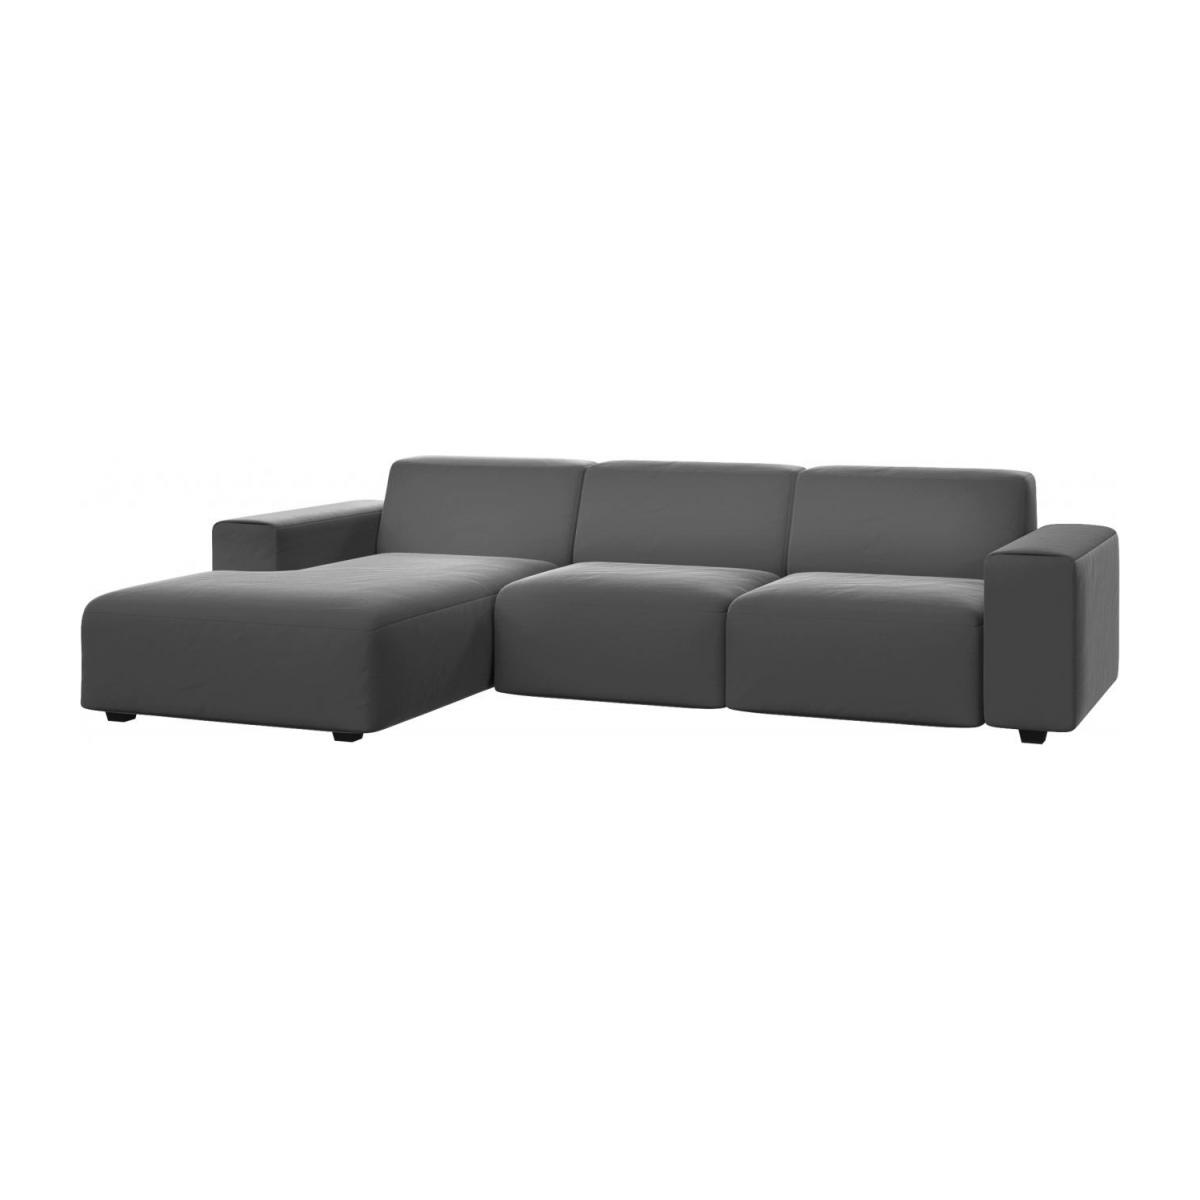 posada 3 sitzer sofa mit chaiselongue links aus samt. Black Bedroom Furniture Sets. Home Design Ideas